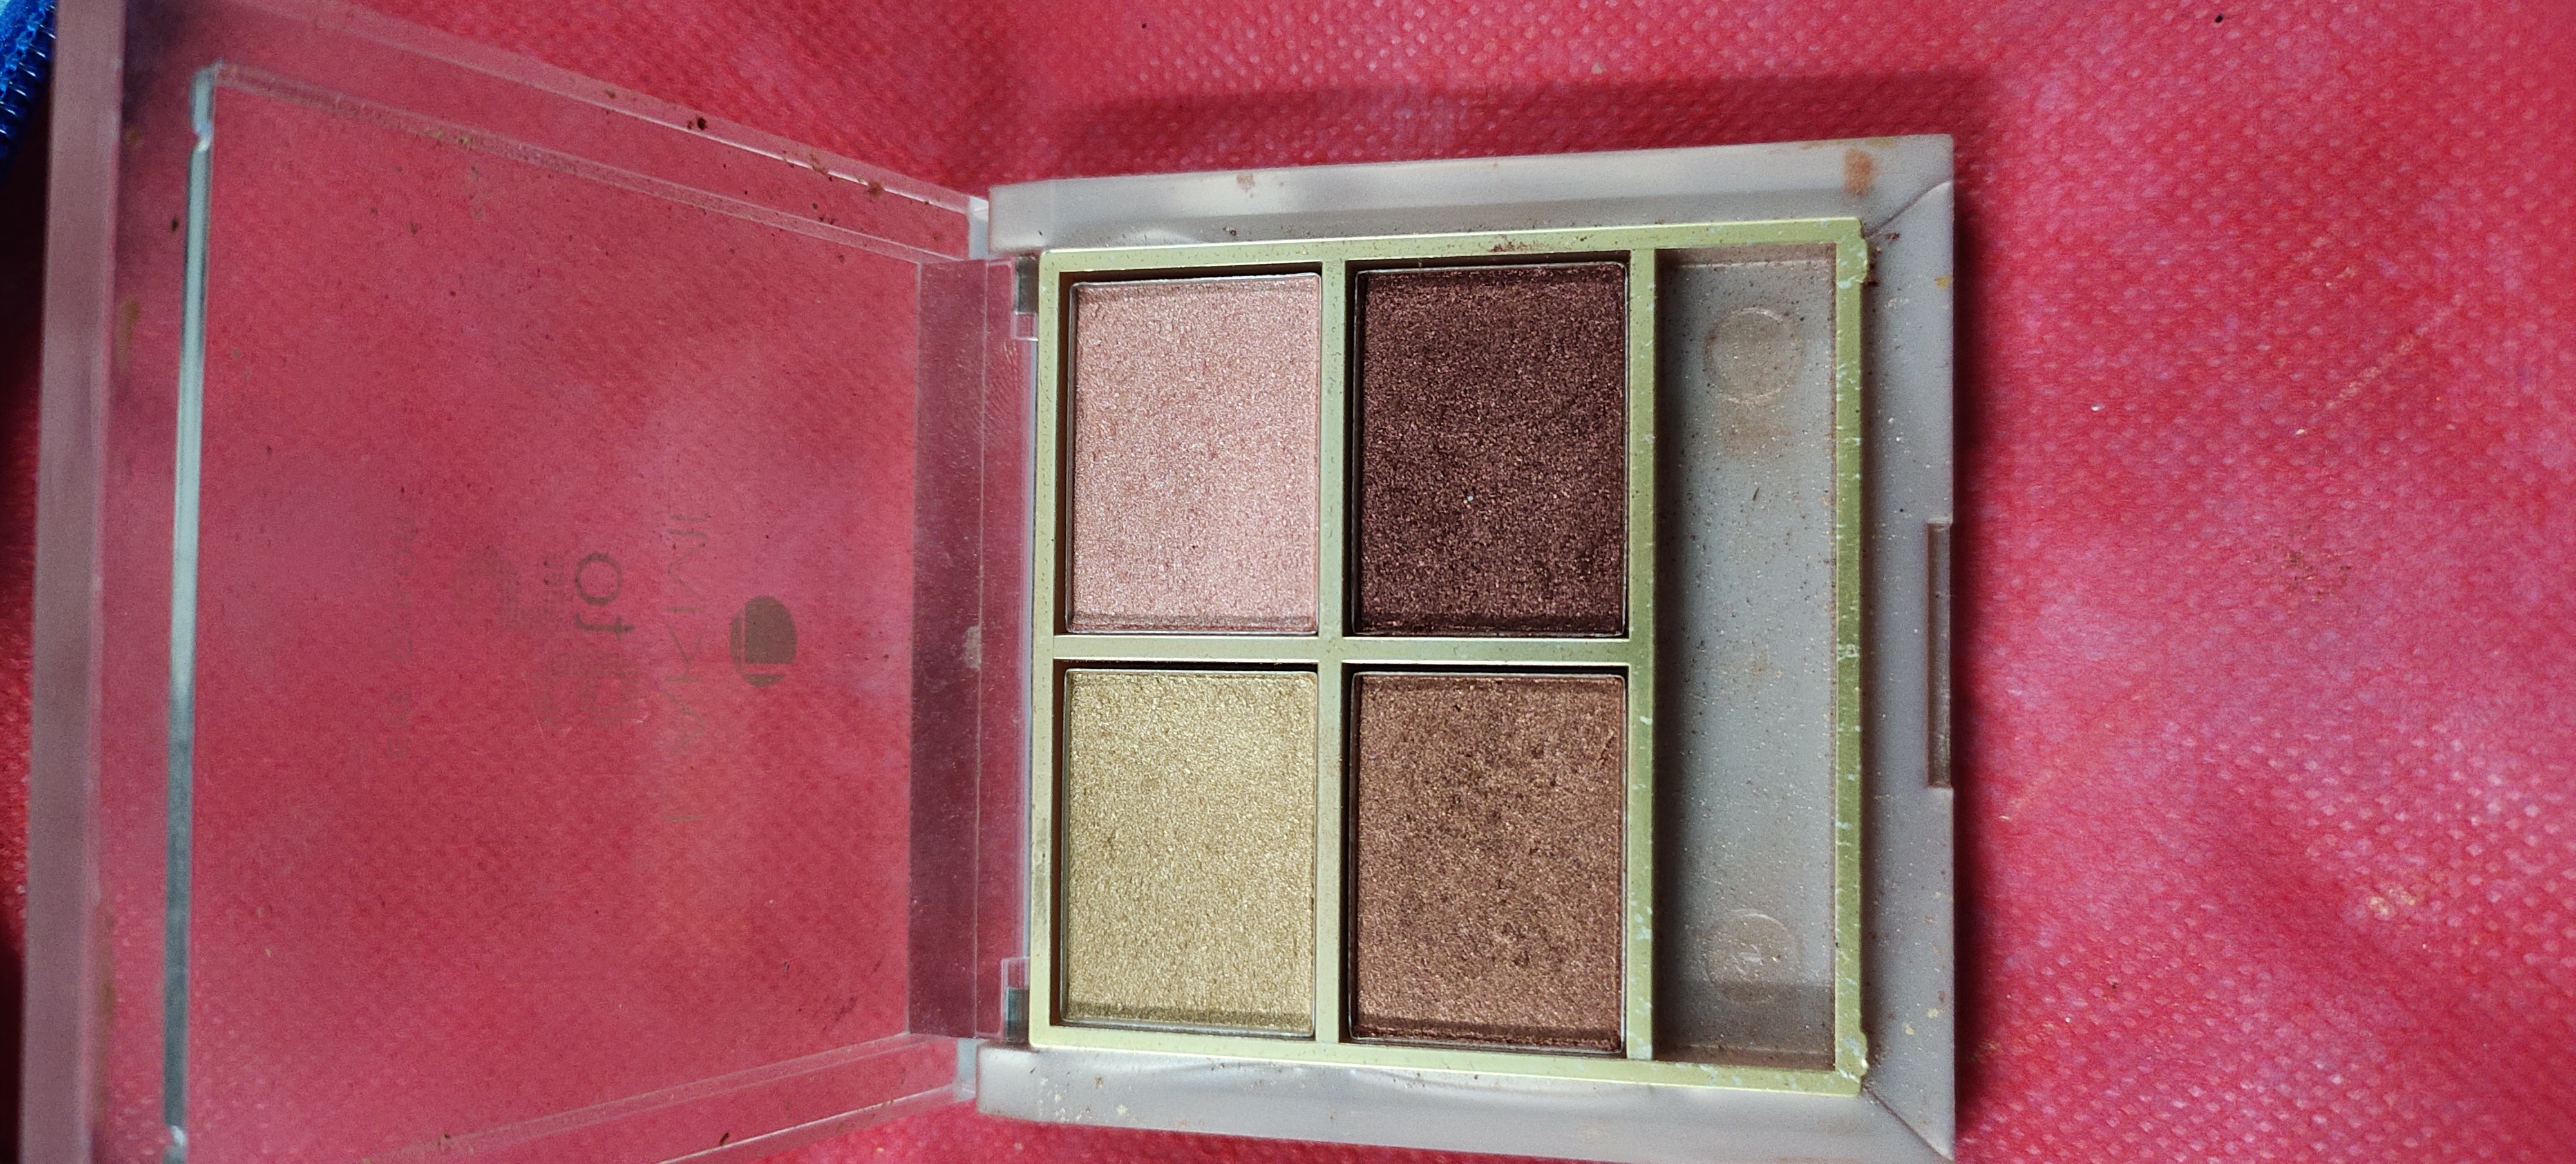 Lakme 9 To 5 Eye Quartet Eyeshadow pic 2-Lakme quartet eyeshadow-By s_a_n_z_0